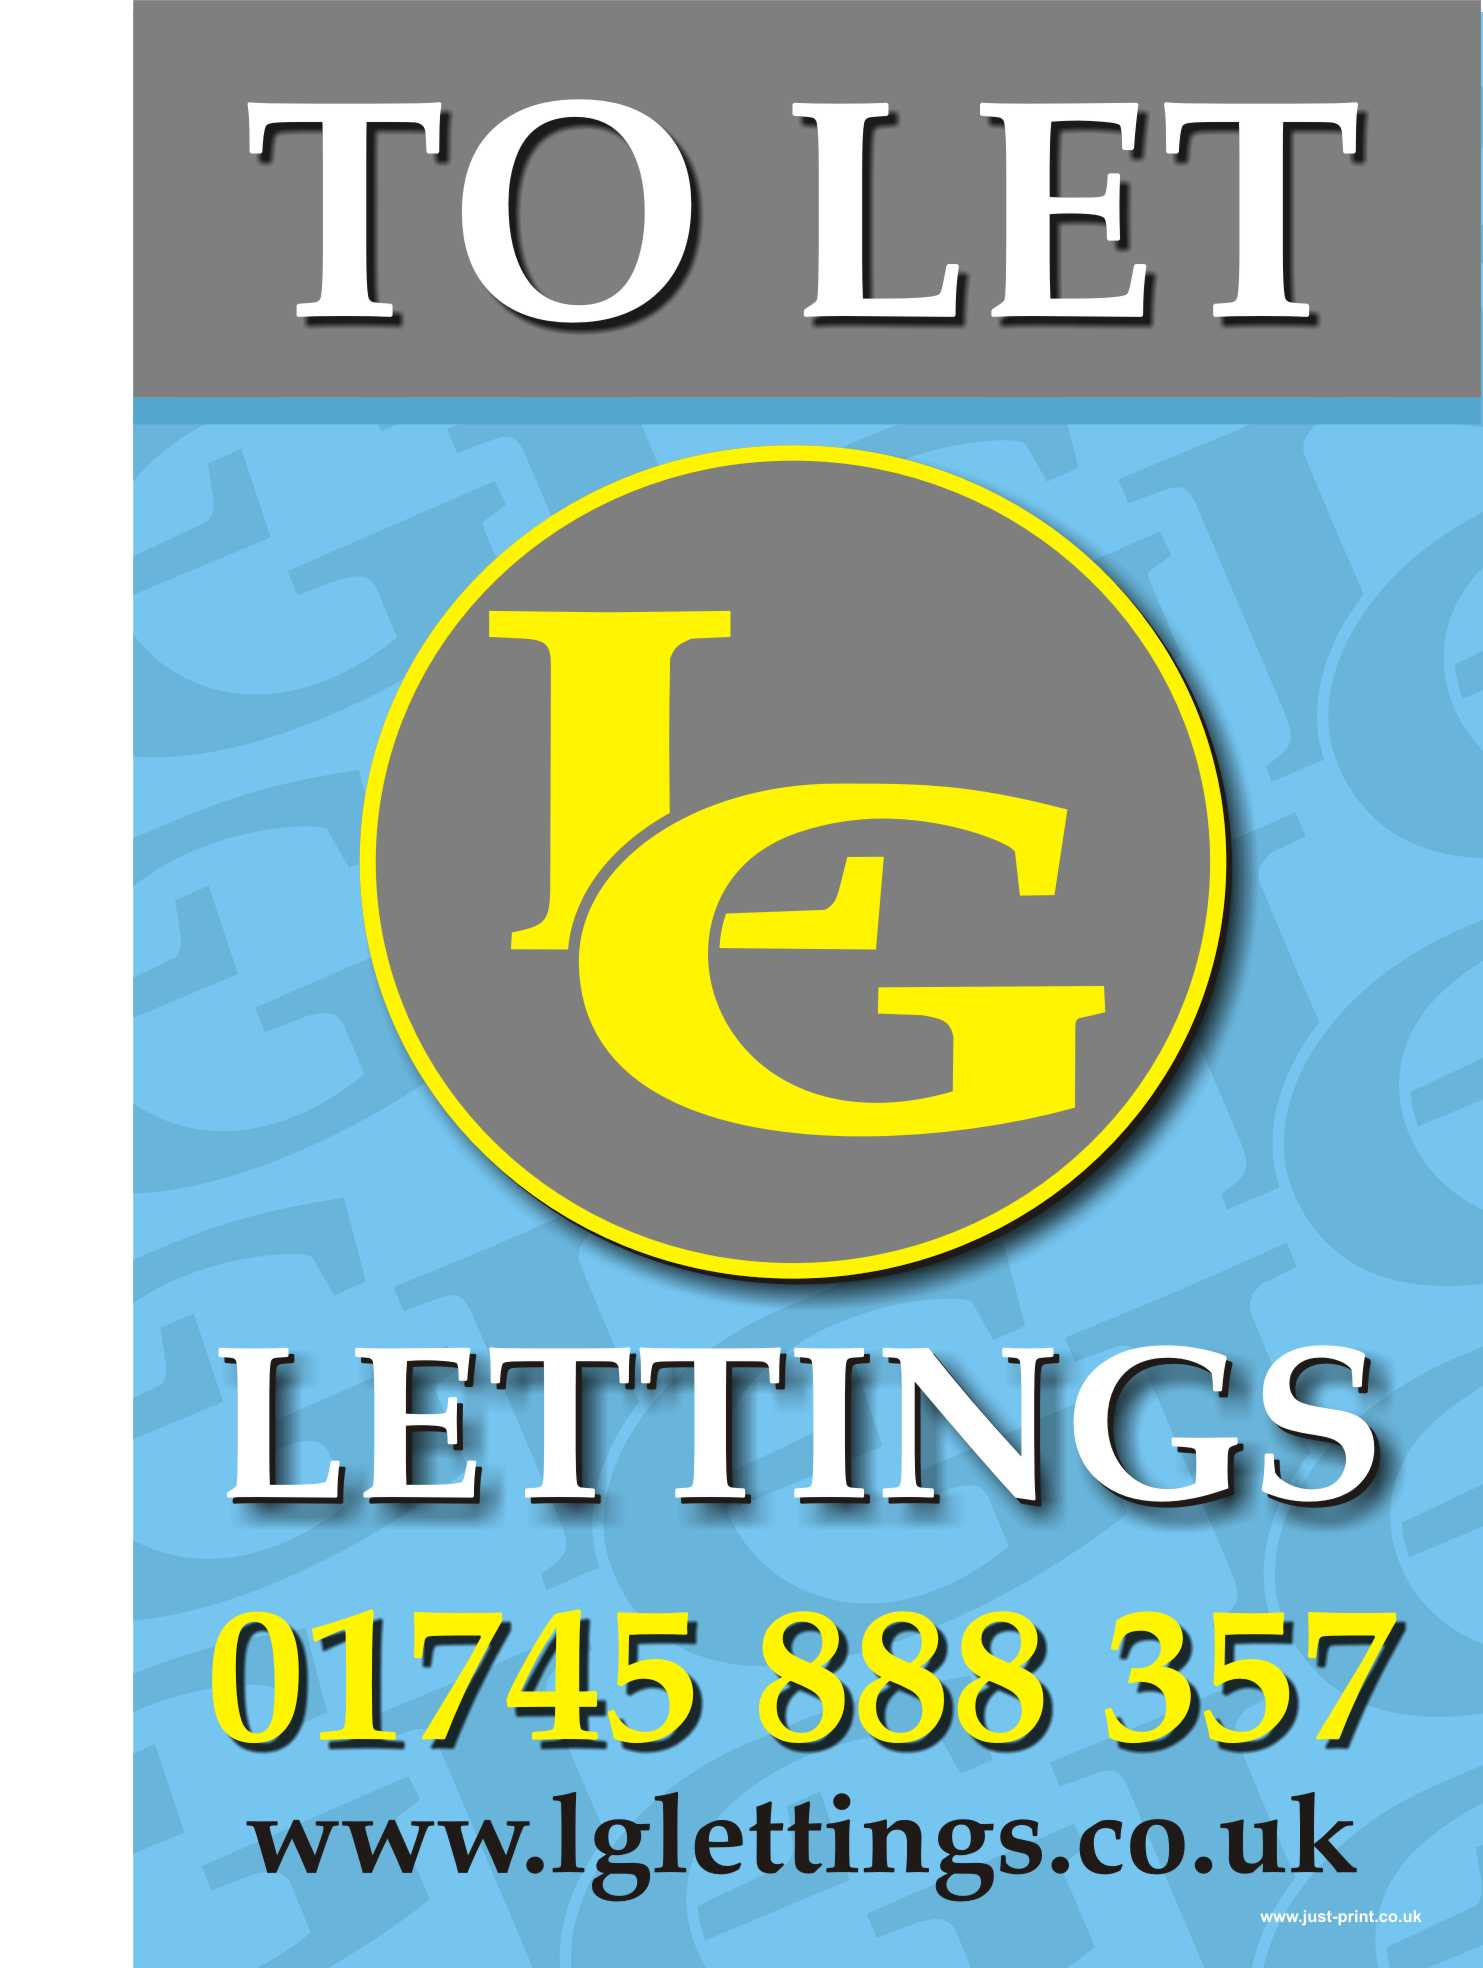 estateagentboardshop-lg-lettings